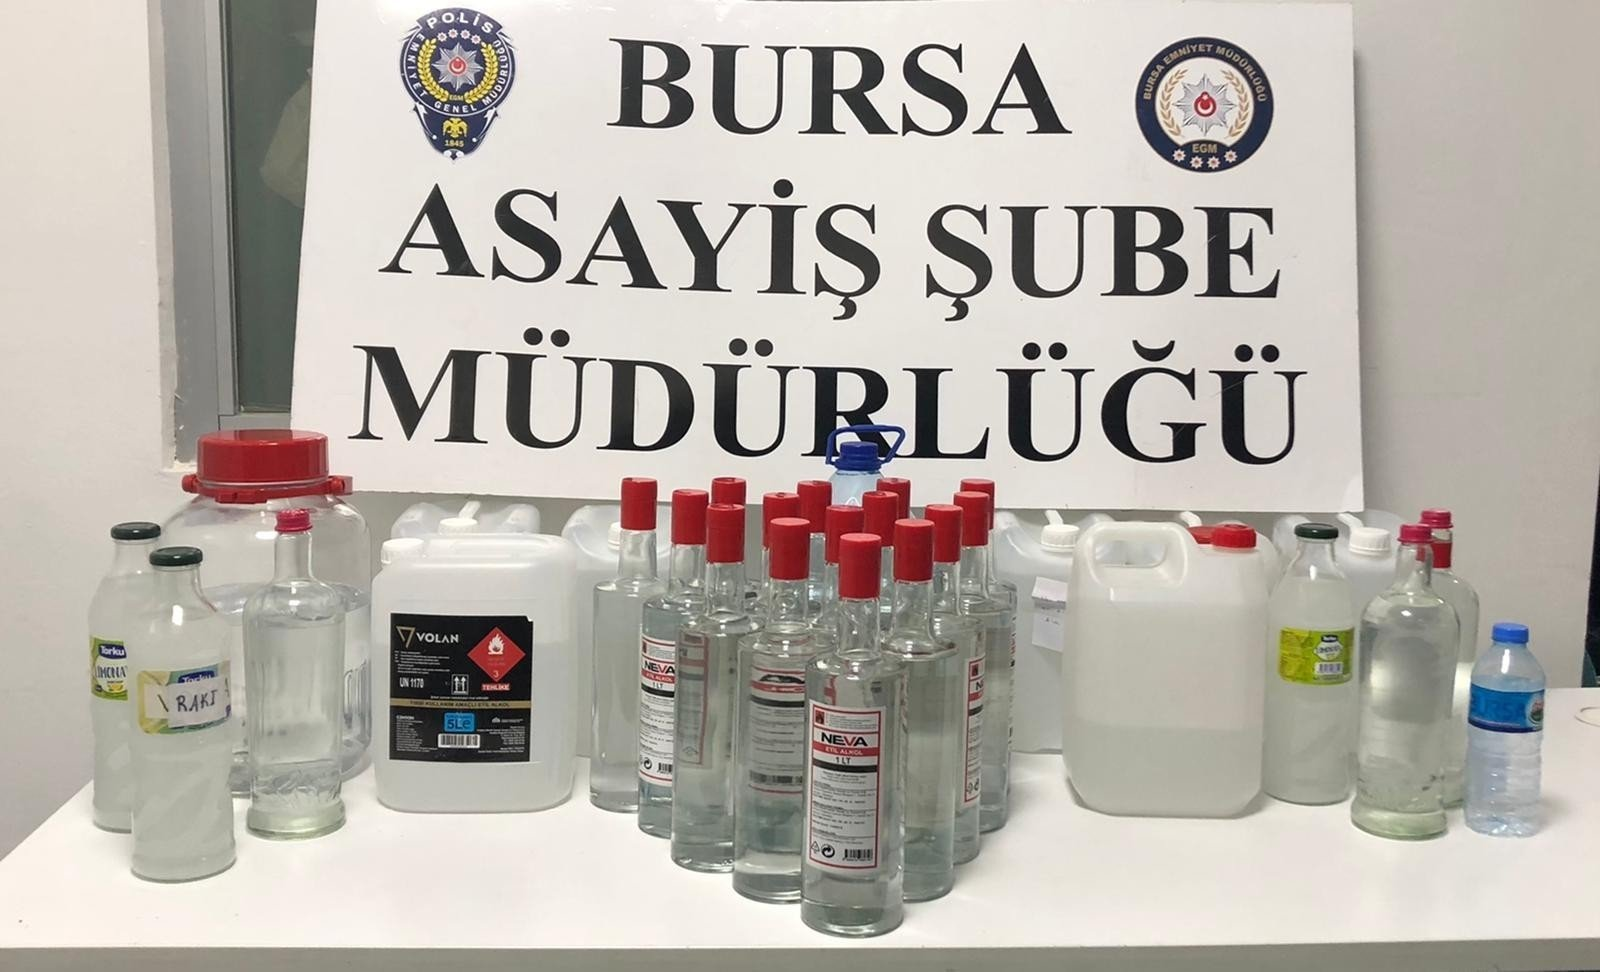 Police exhibit bootleg alcohol seized in operations in Bursa, northwestern Turkey, Dec. 16, 2020. (IHA PHOTO)